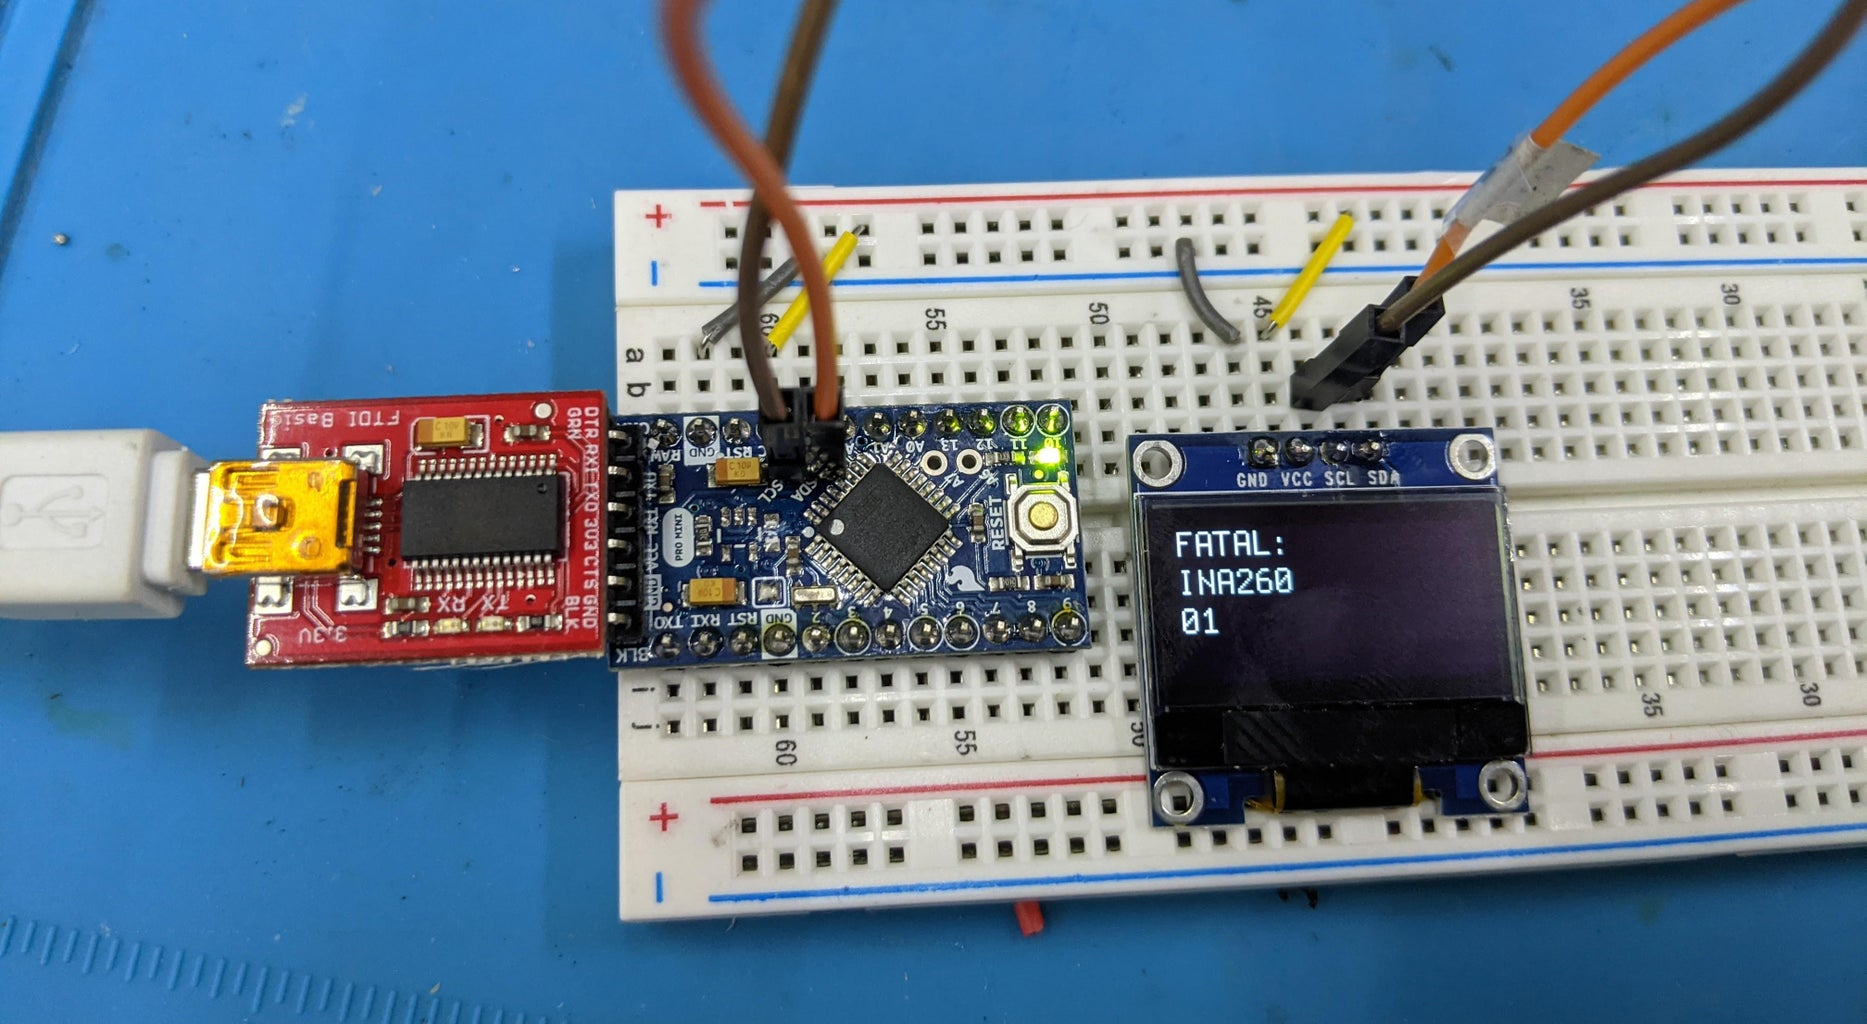 Initial OLED Hookup and Firmware Test